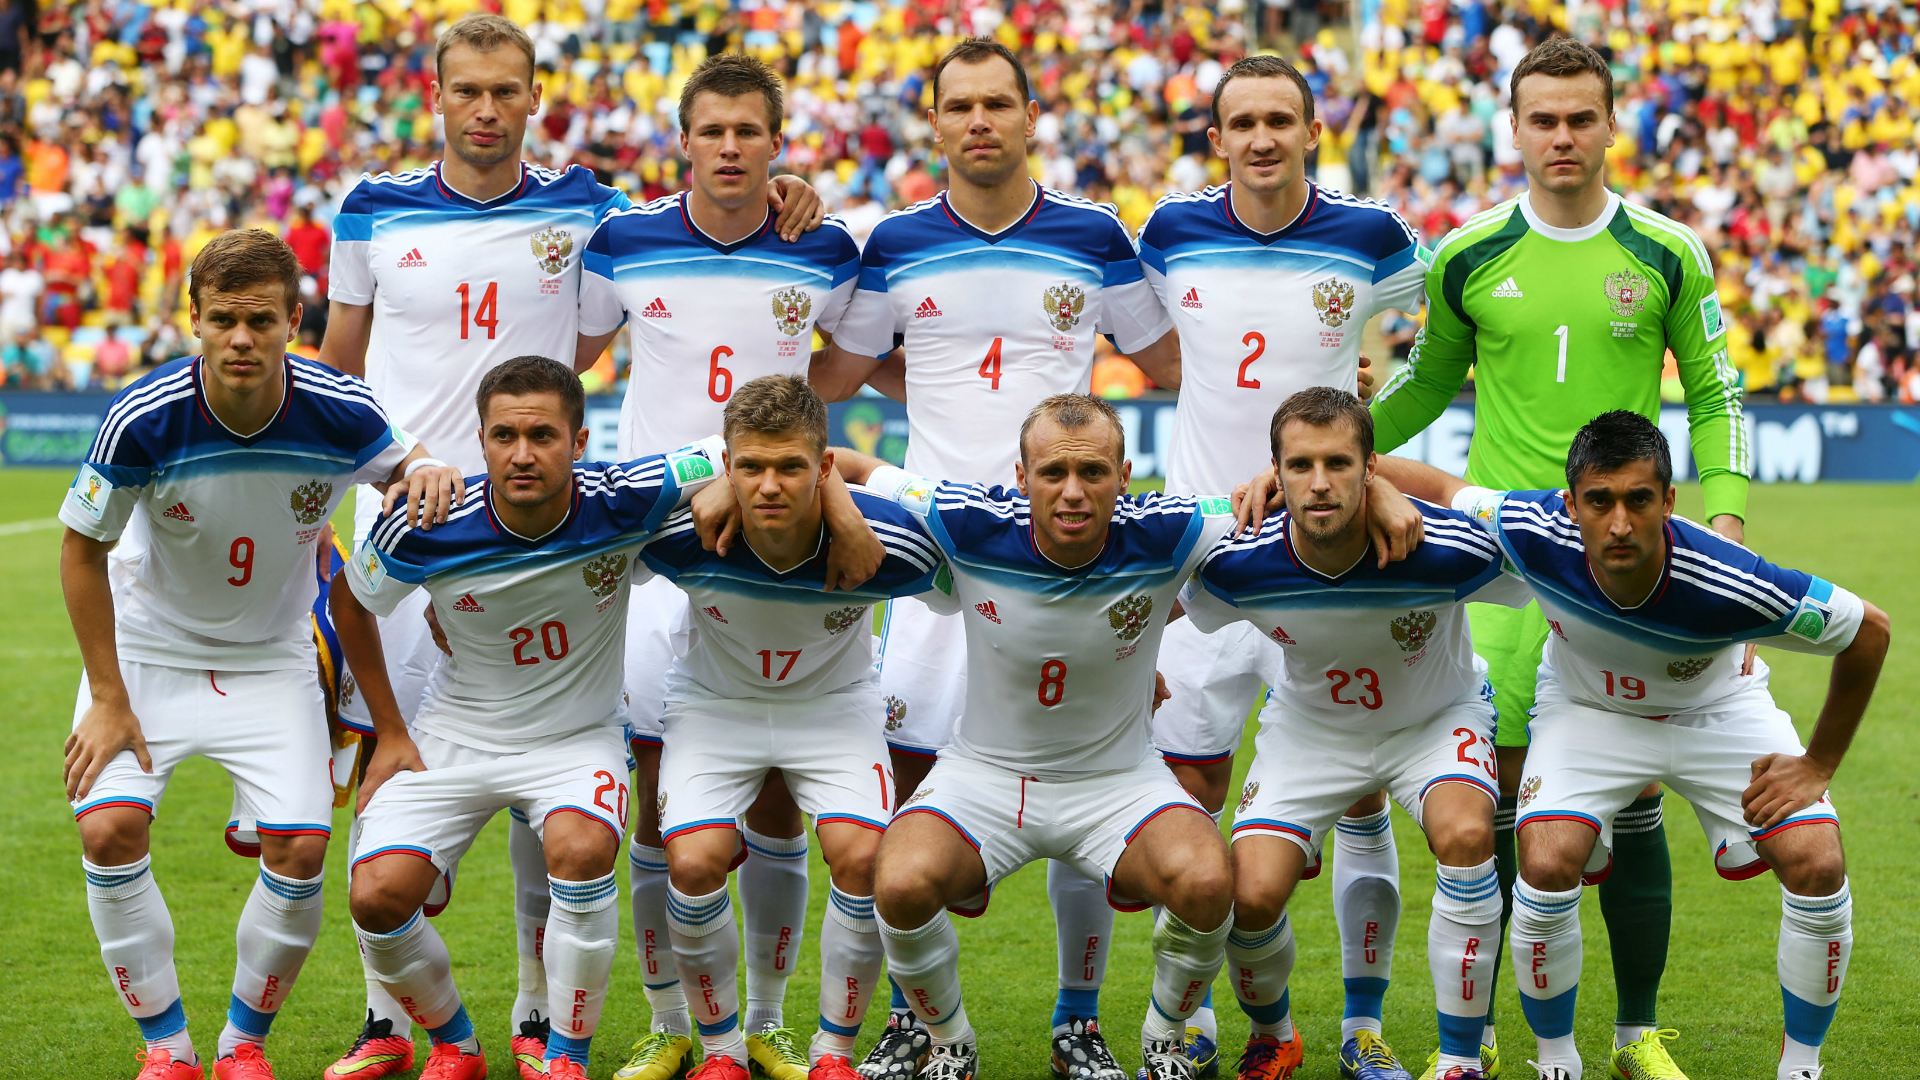 Russia World Cup 2014 06222014